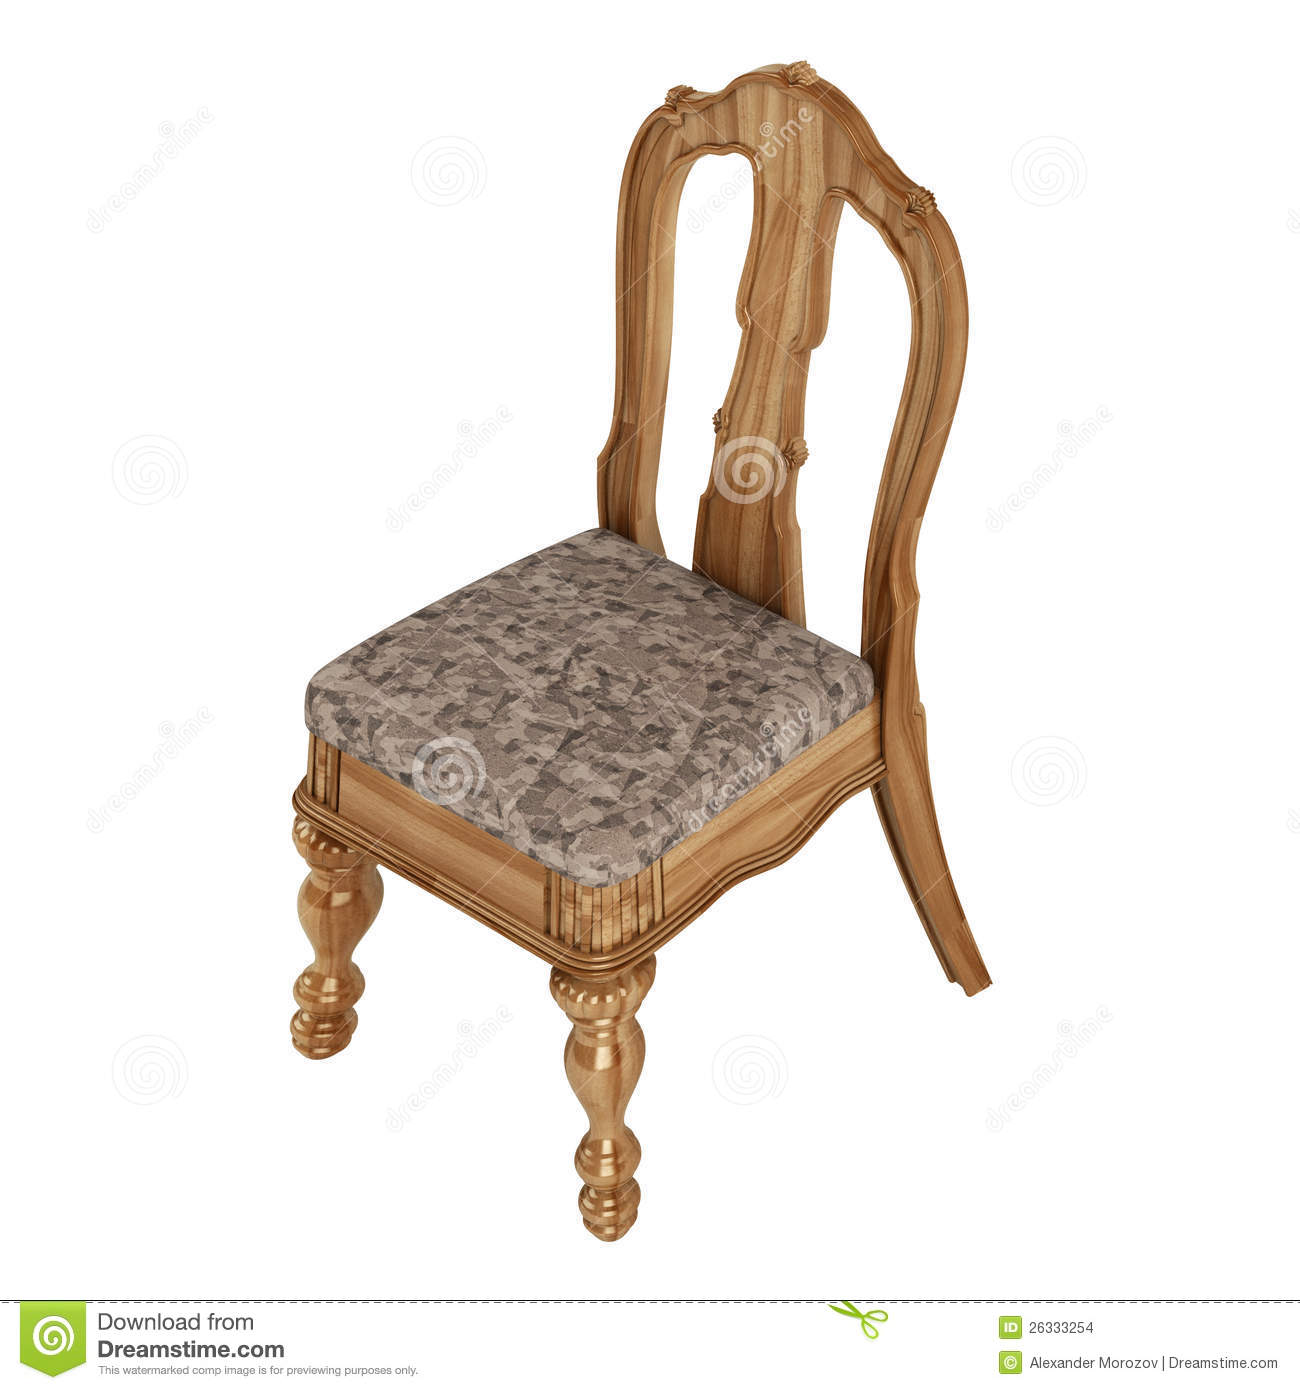 Superb img of More similar stock images of ` Antique wooden chair ` with #84A427 color and 1300x1390 pixels